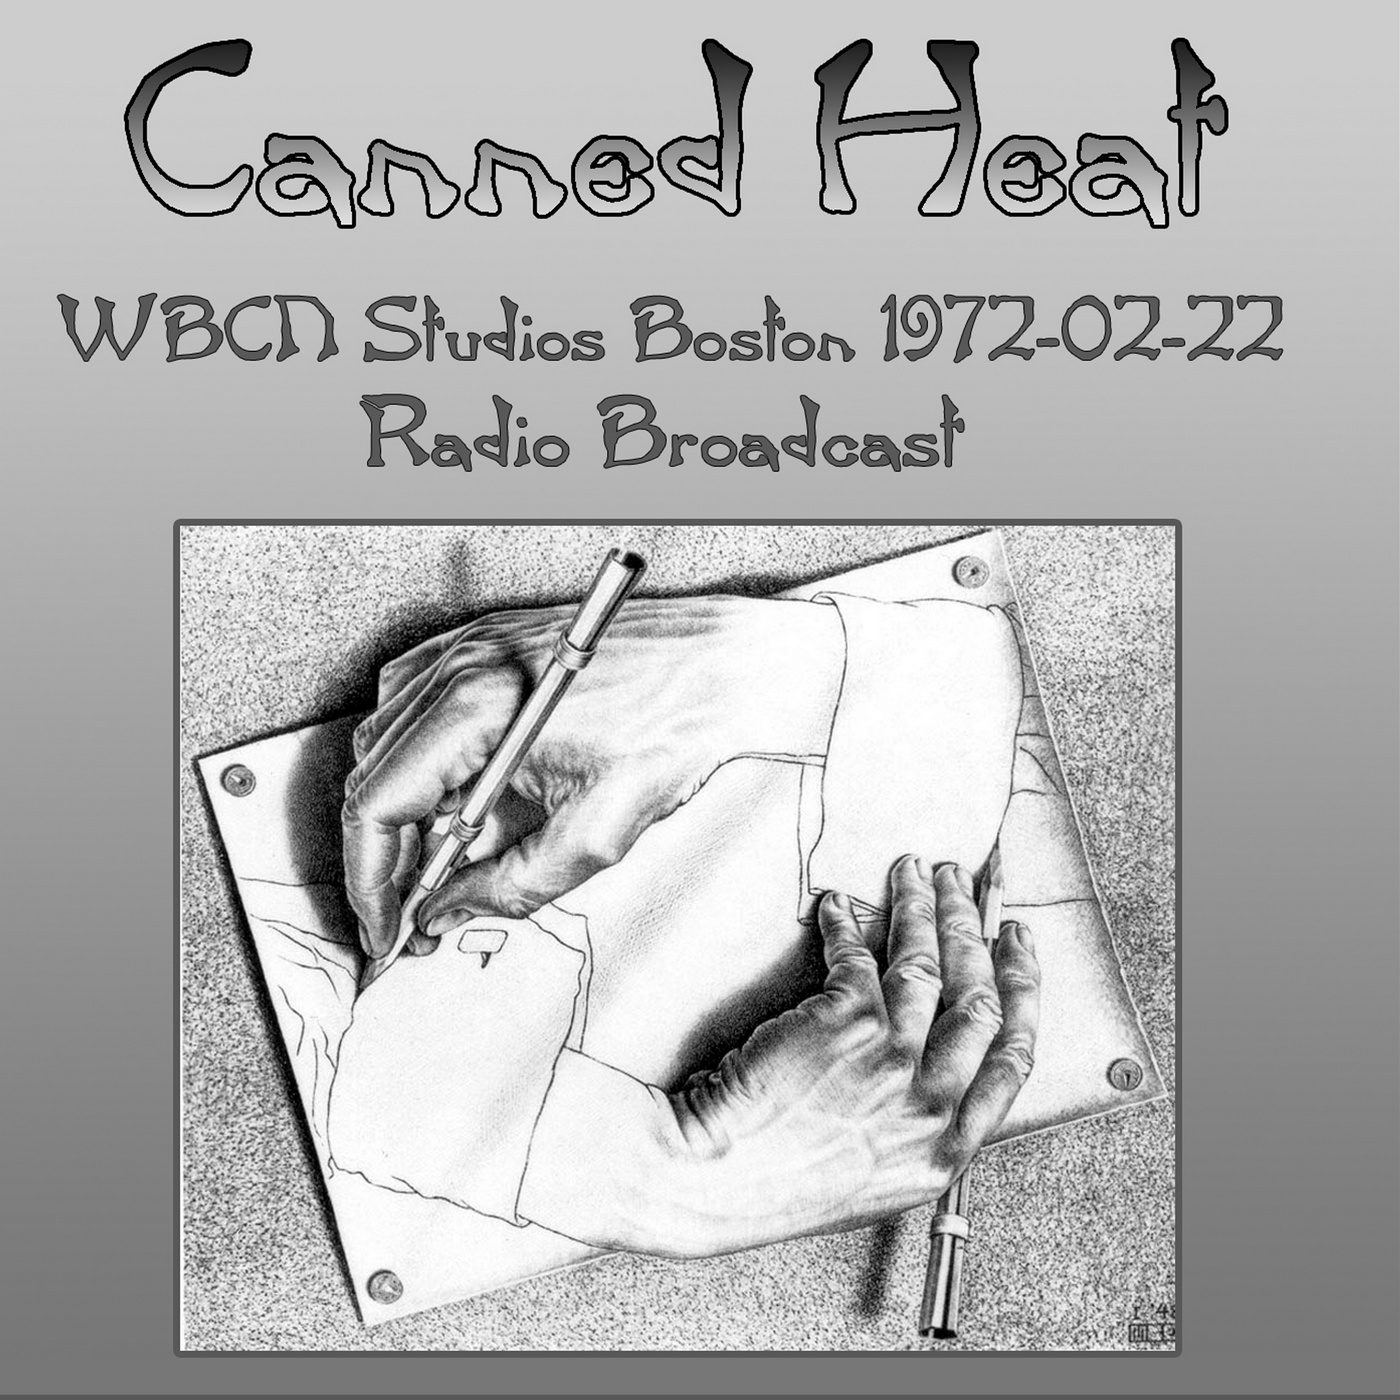 Canned Heat - WBCN Studios Boston - Radio Broadcast FM (1972)